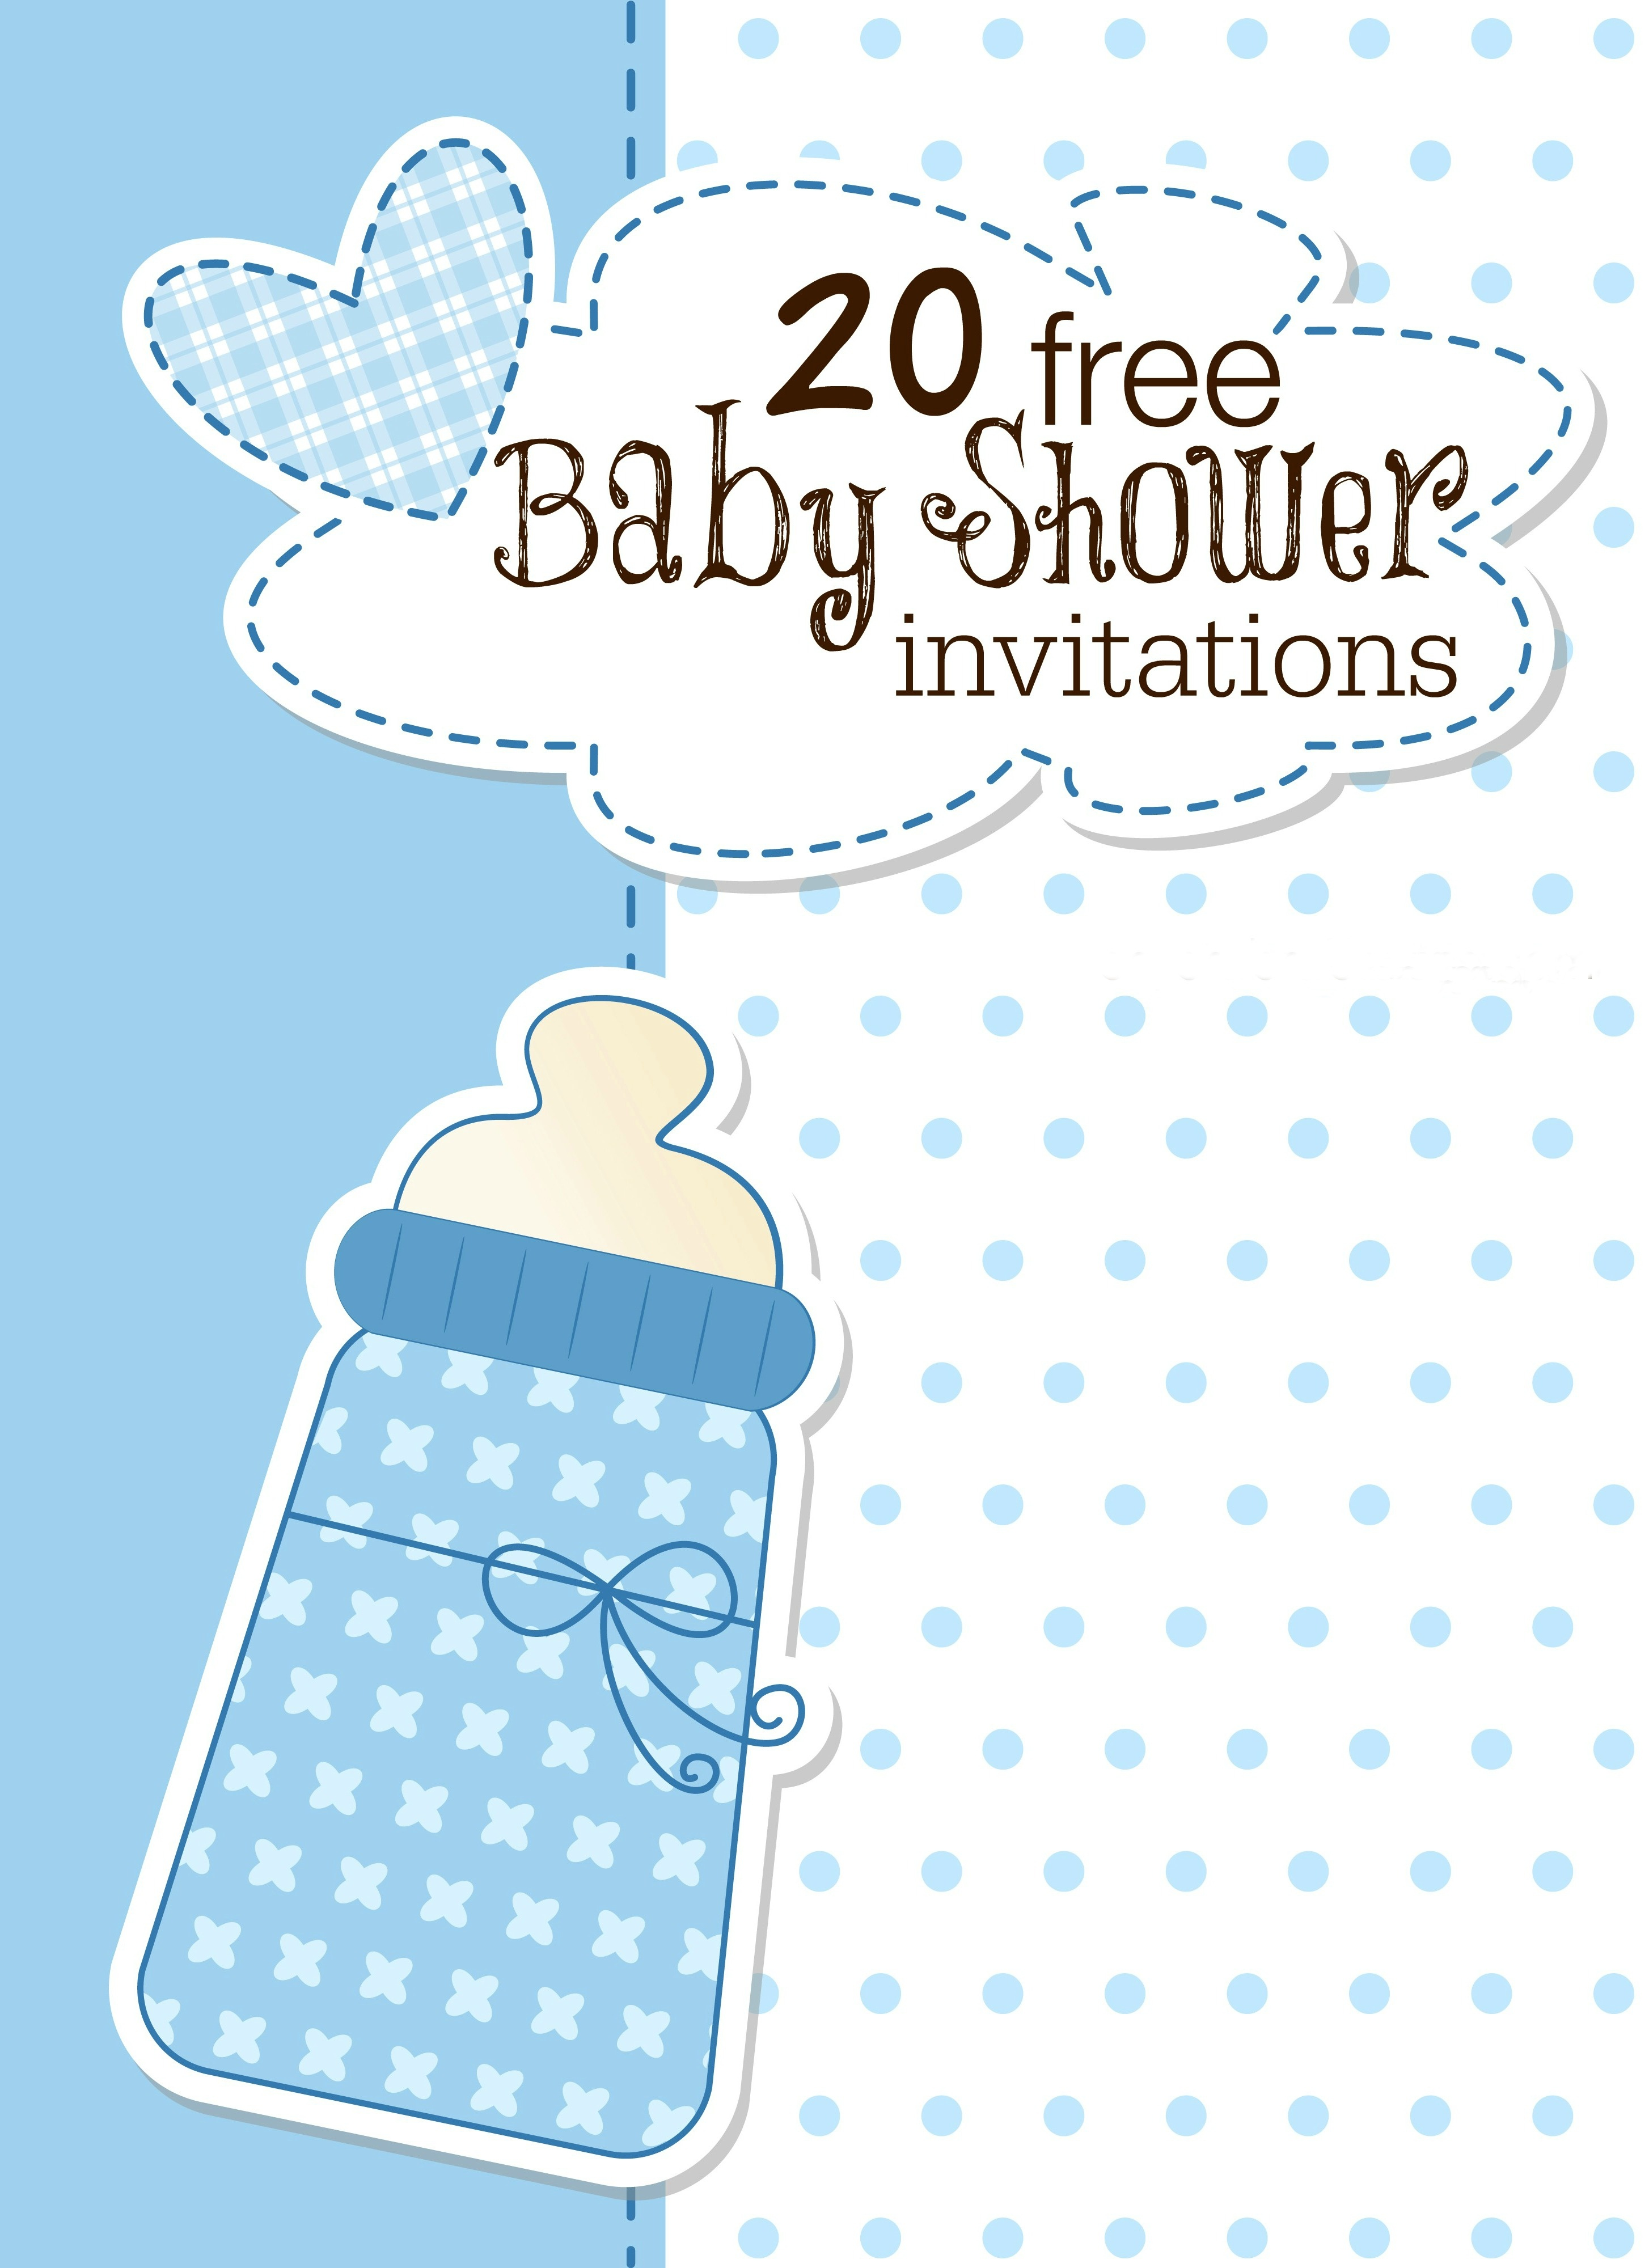 Printable Baby Shower Invitations - Free Printable Baby Registry Cards